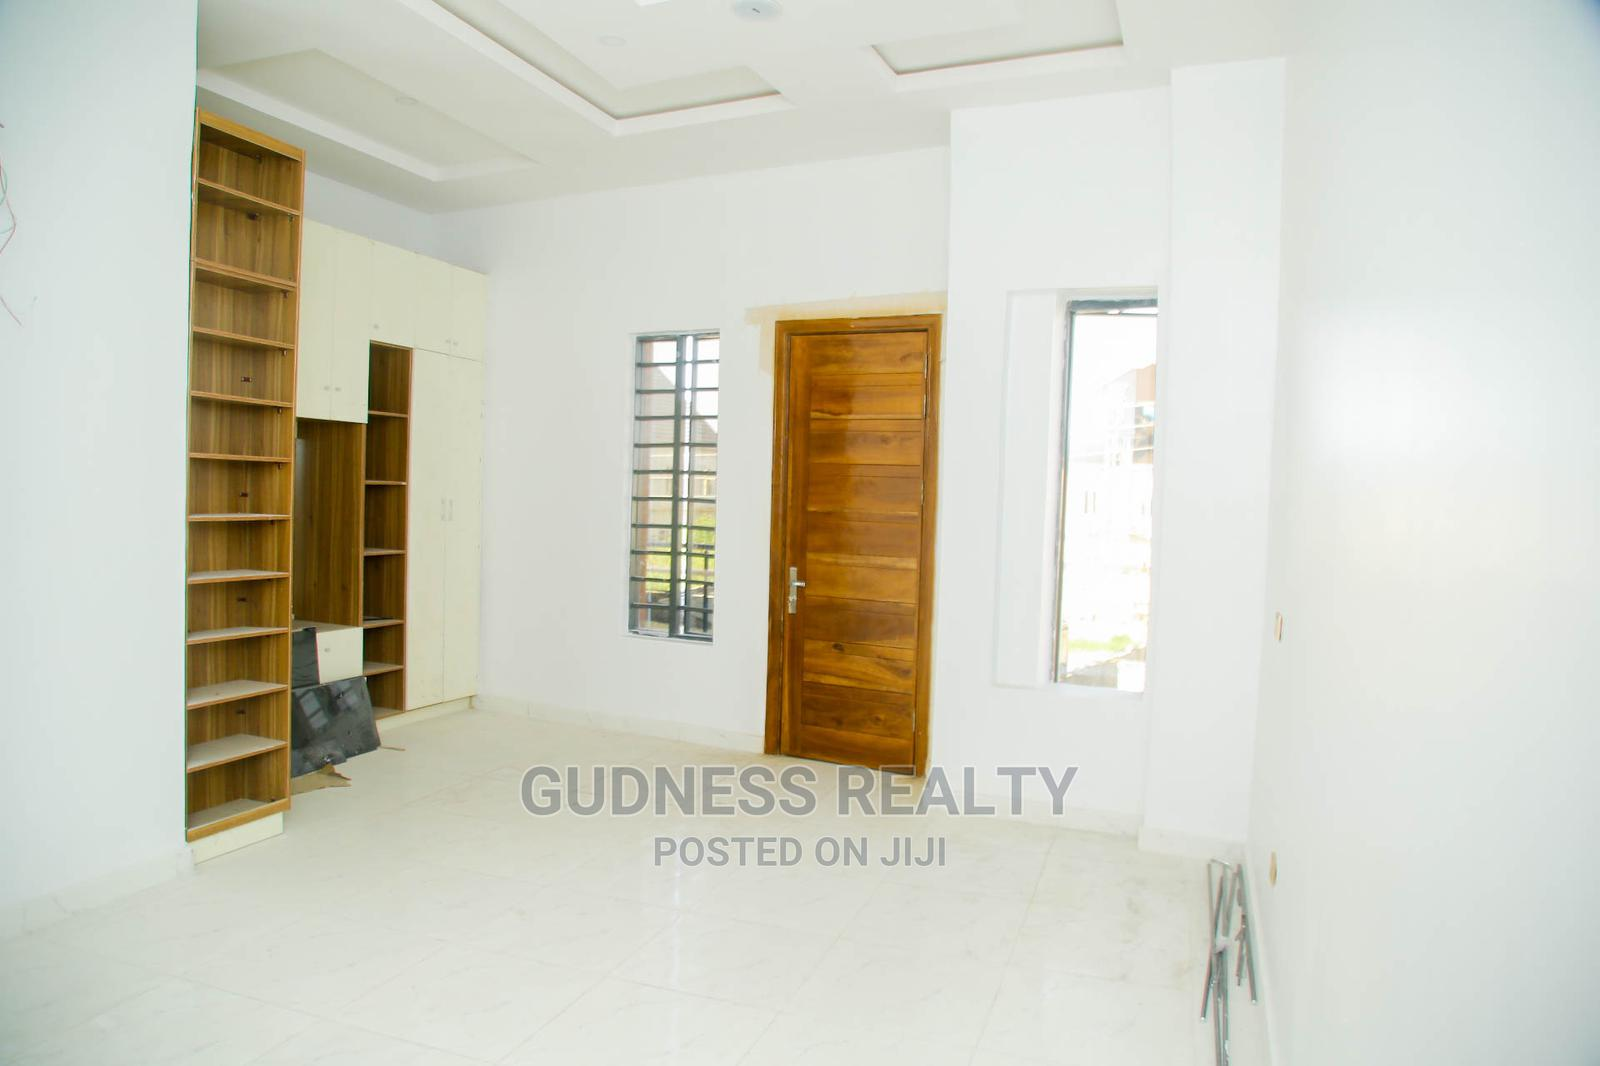 5 Bedroom Fully Detached-duplex With BQ | Houses & Apartments For Sale for sale in Chevron, Lekki, Nigeria